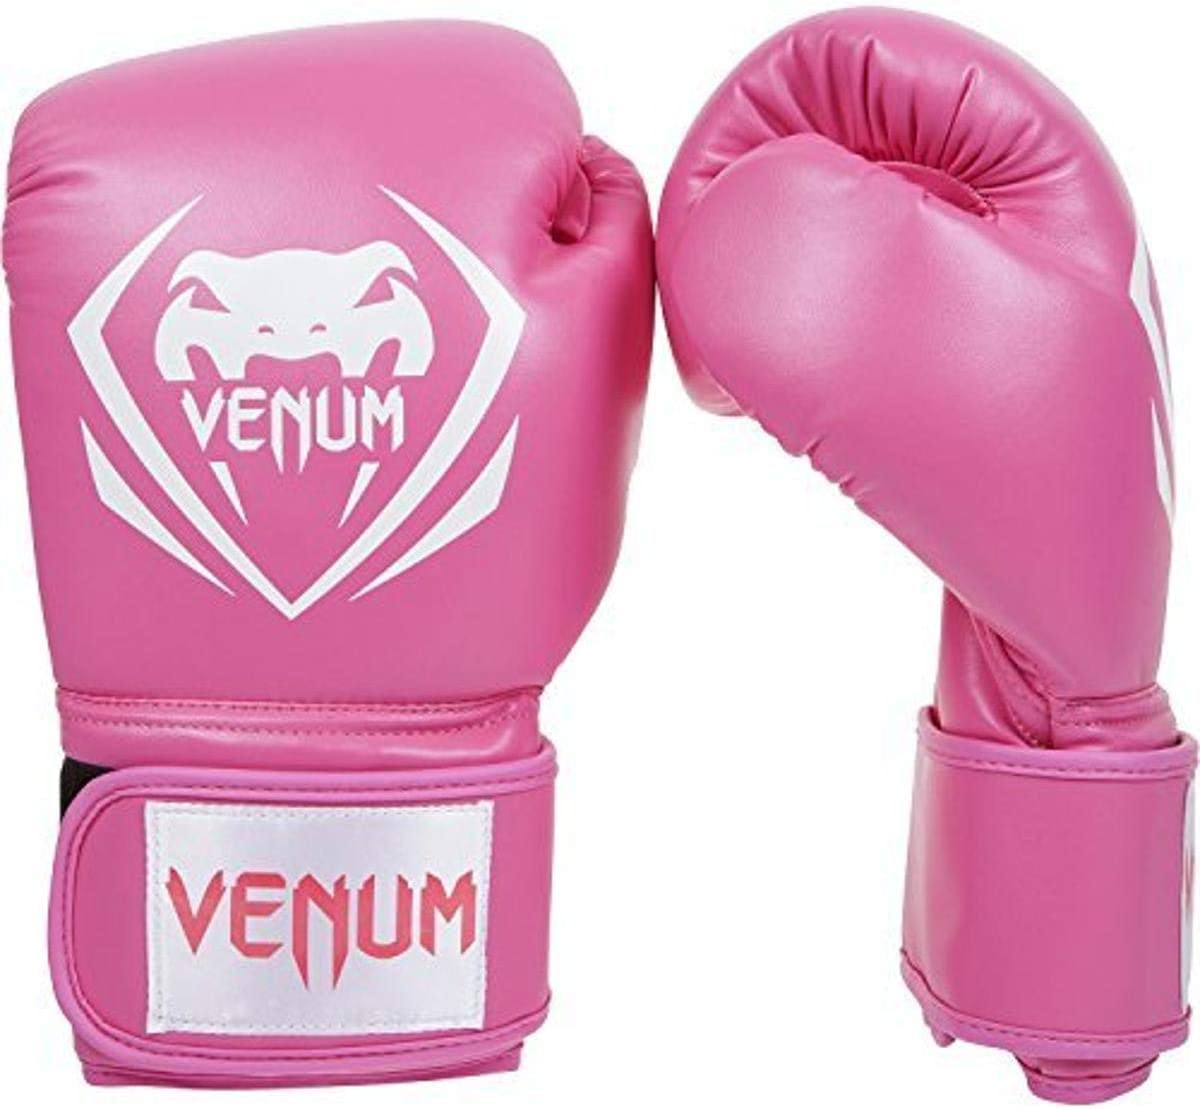 Venum Contender Boxing Gloves 16 - Pink Oz Same Store day shipping